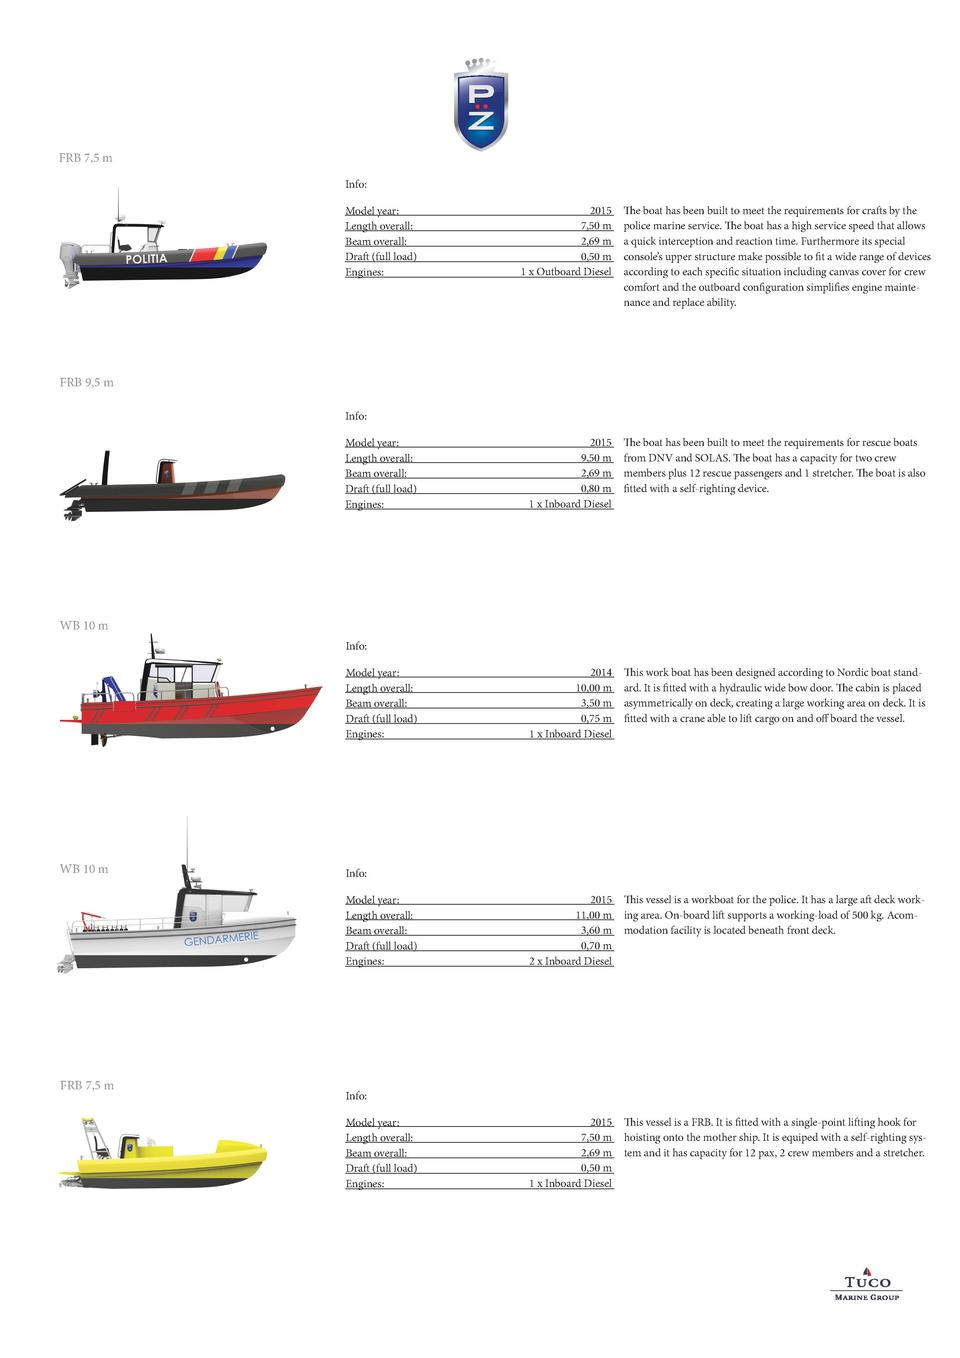 FRB 7,5 m Info  Model year  Length overall  Beam overall  Draft  full load  Engines   2015 7,50 m 2,69 m 0,50 m 1 x Outboa...